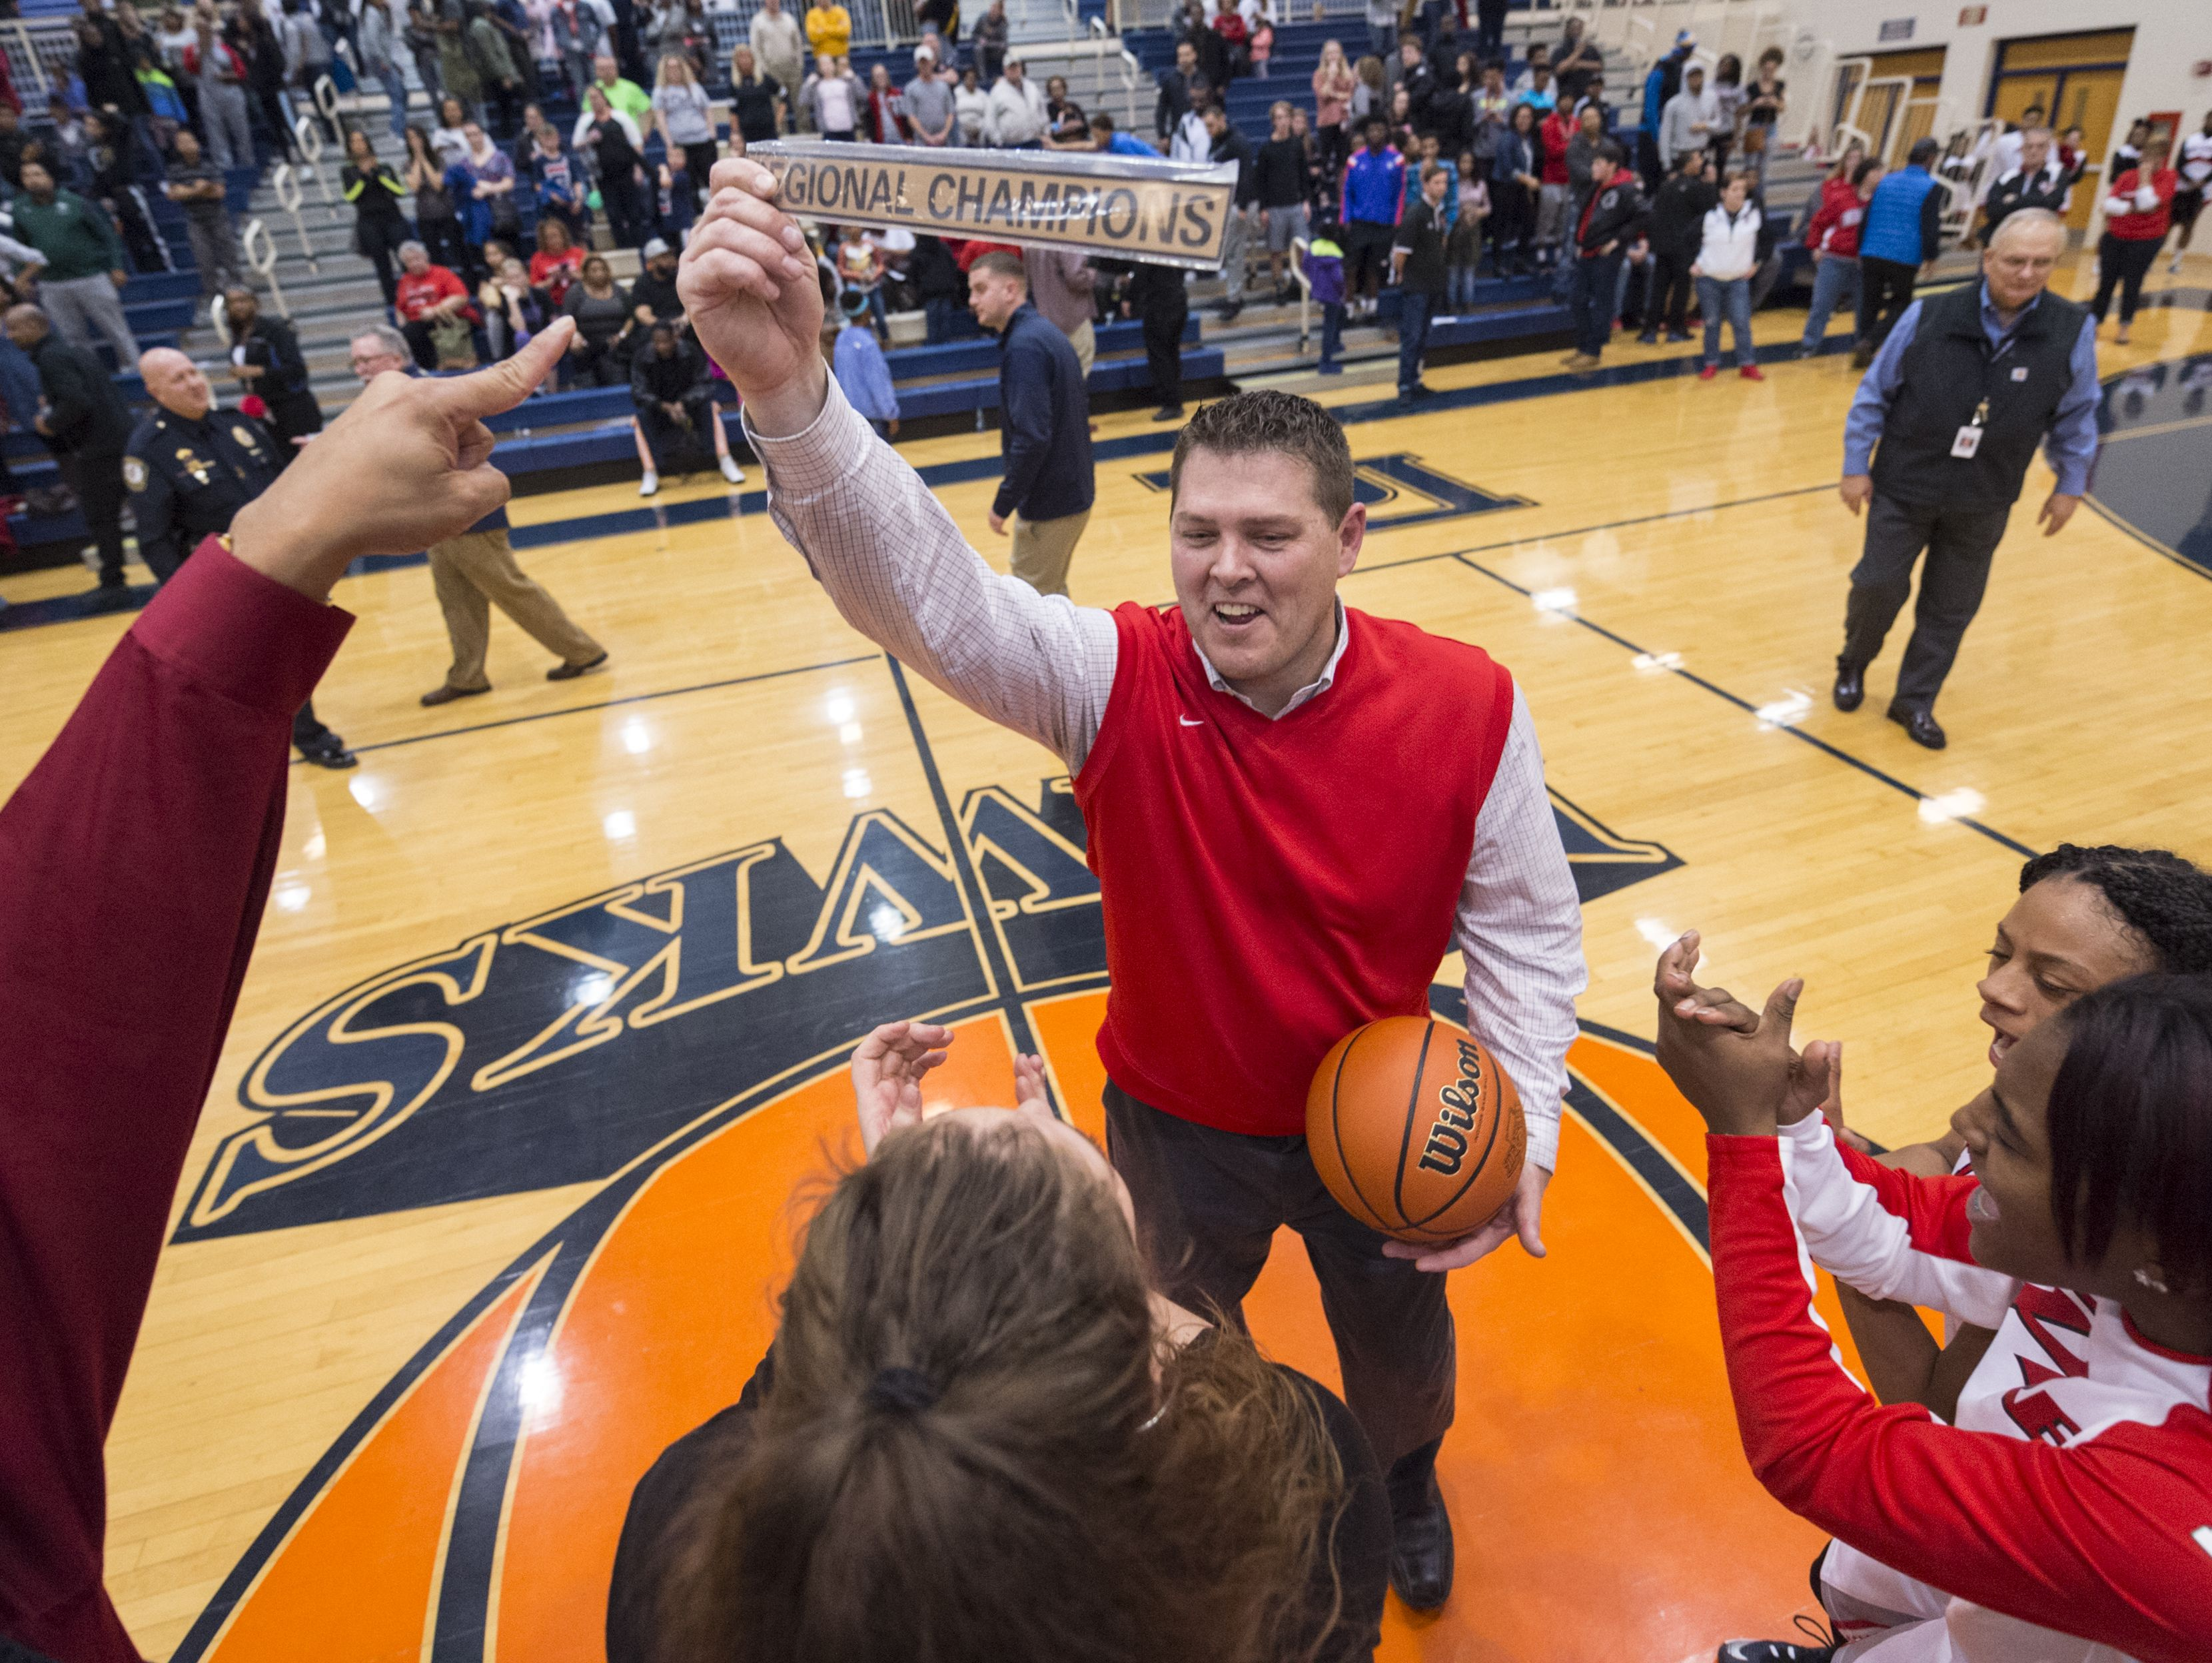 Pike coach Bob Anglea celebrates with the Regional Champions trophy and the game ball after winning the IHSAA 4A Girls' Basketball Tournament Regional championship game, Saturday.